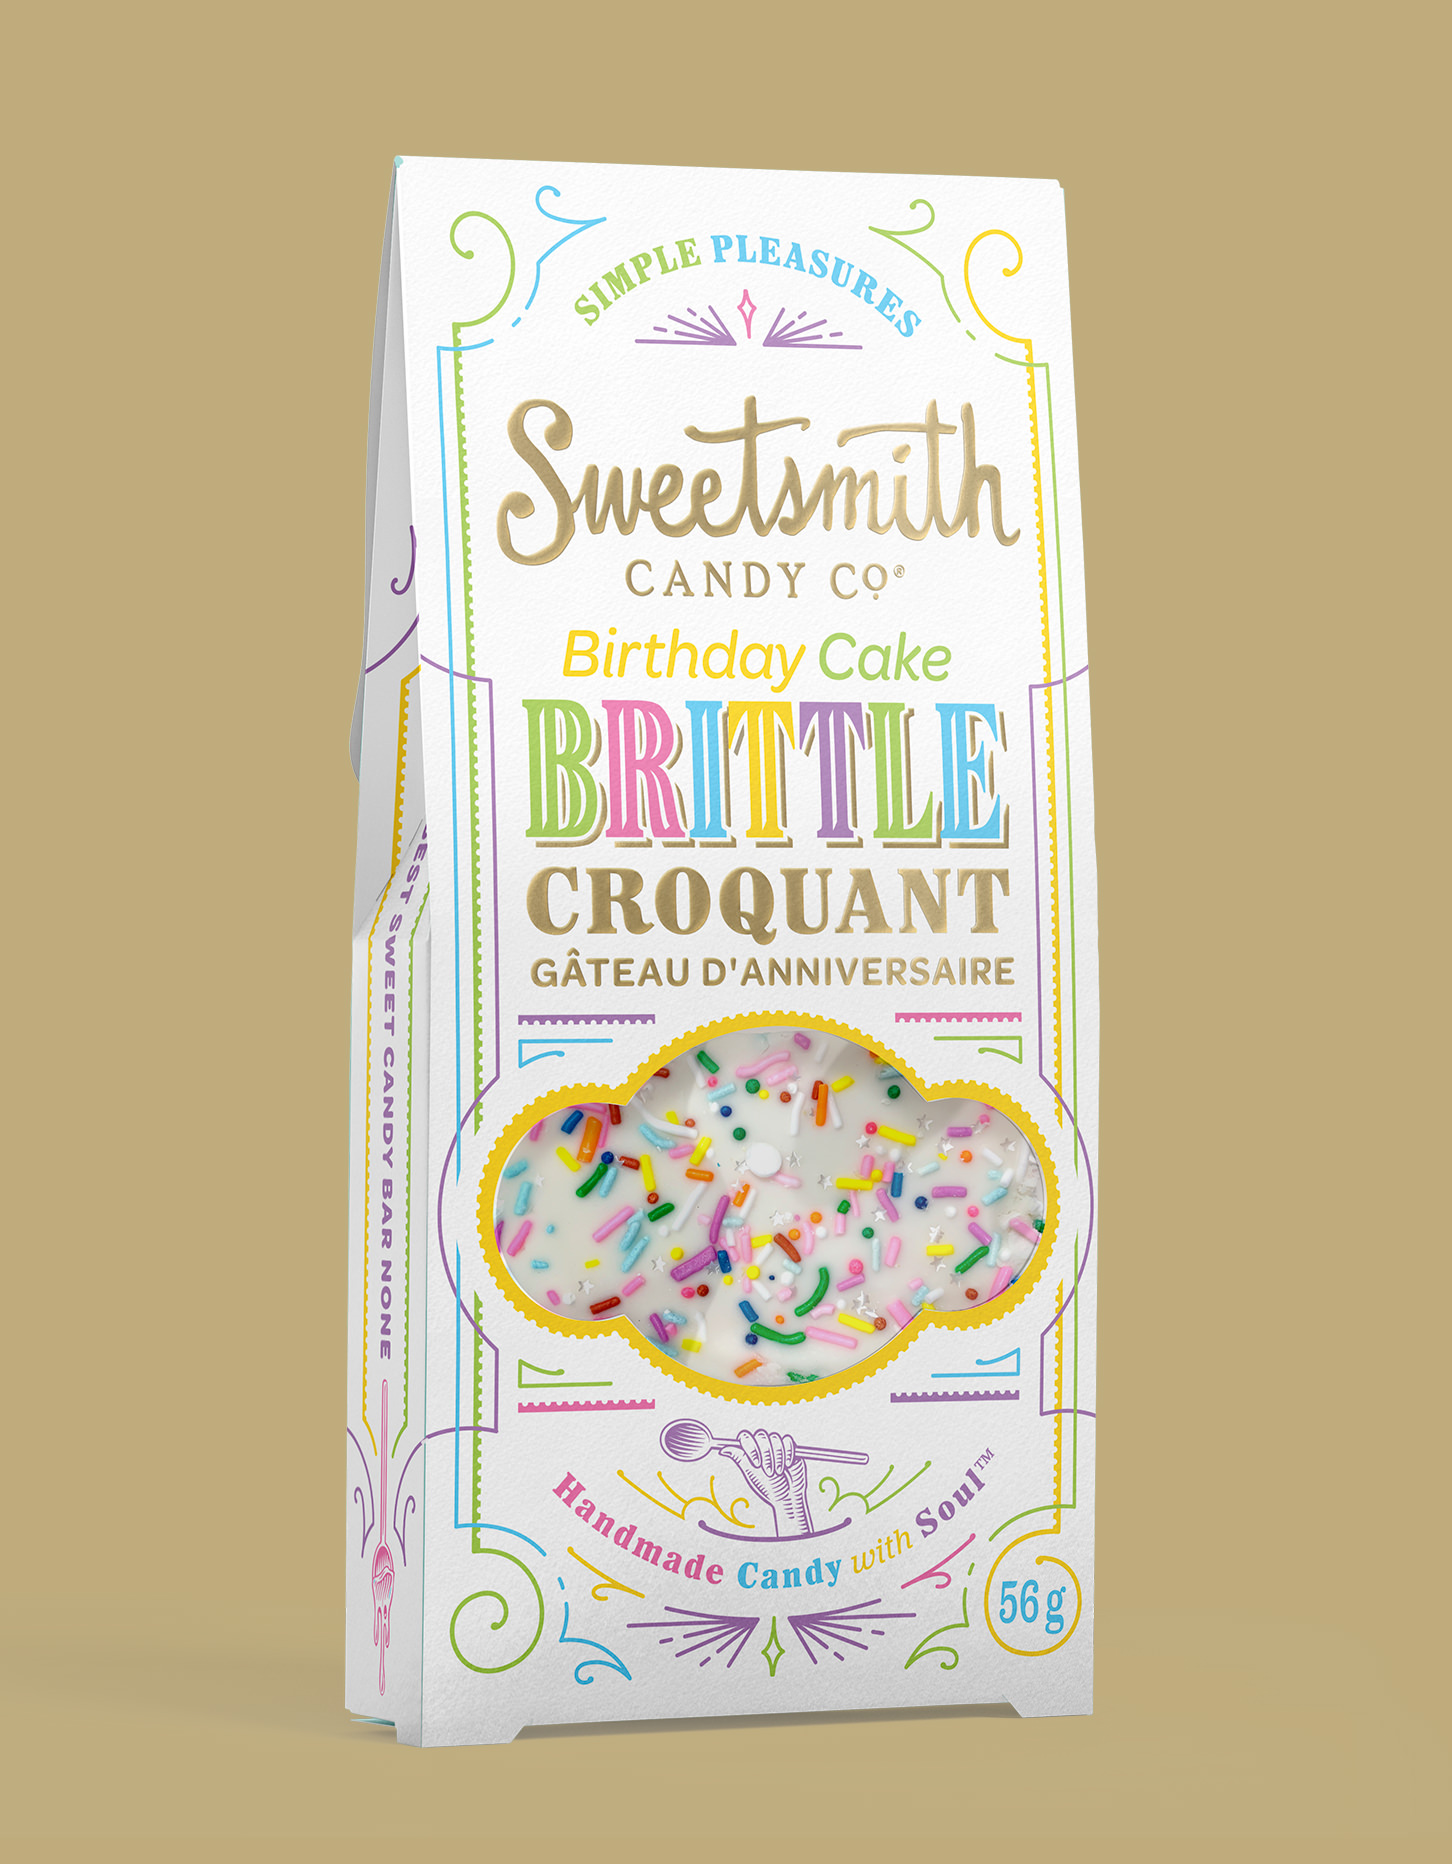 Chad Roberts Design Ltd. Sweetsmith Candy Co. Package Design